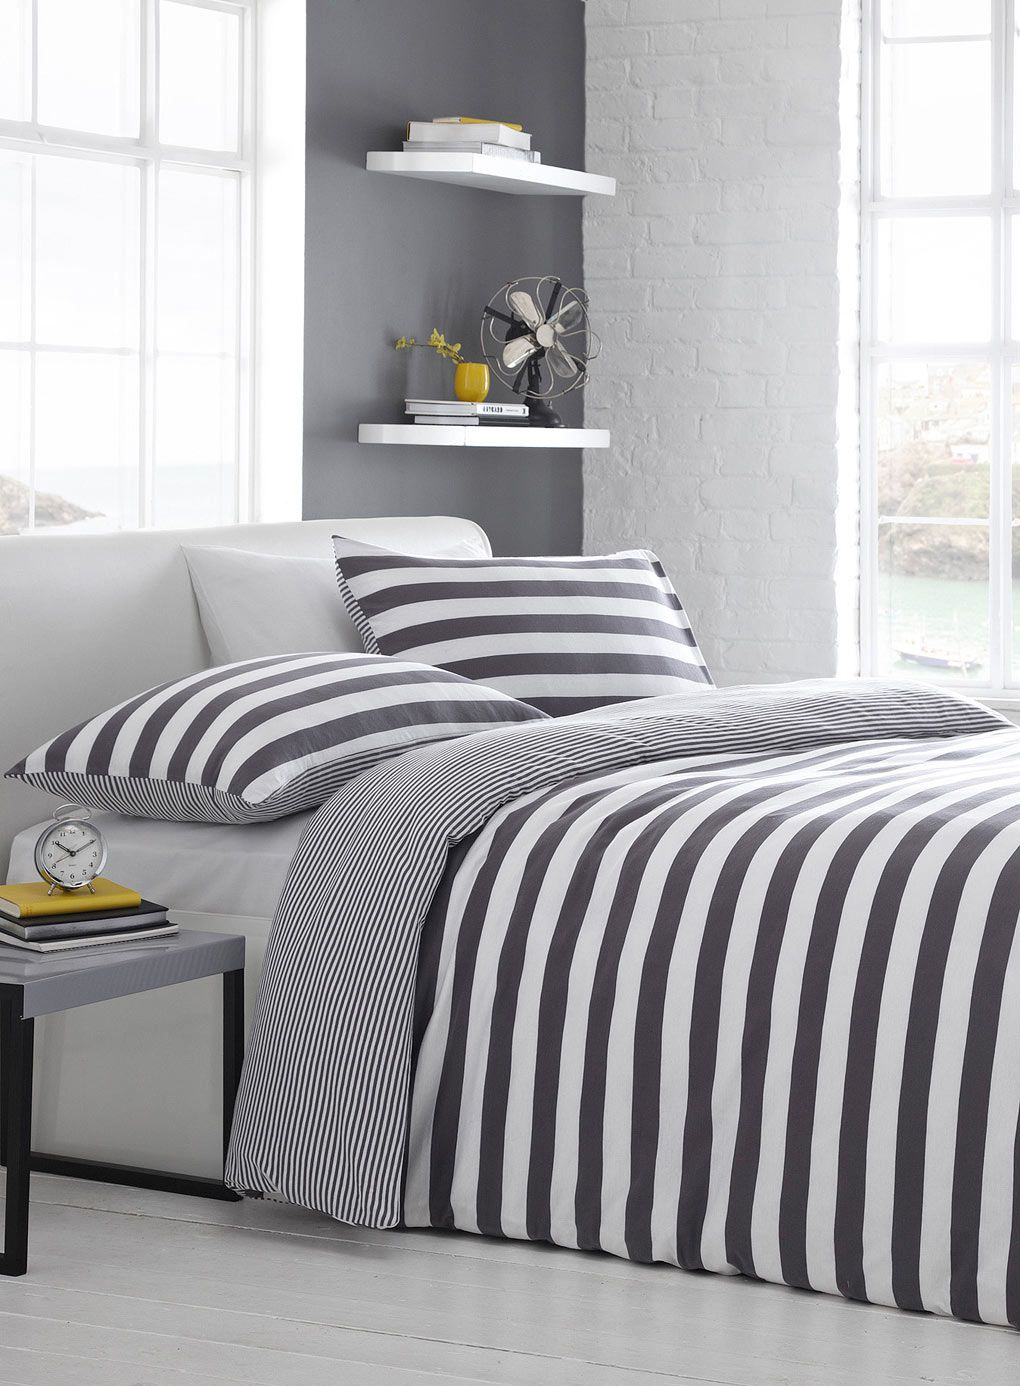 bed bedroom simple modern comforter awesome with white ivory covered striped grey